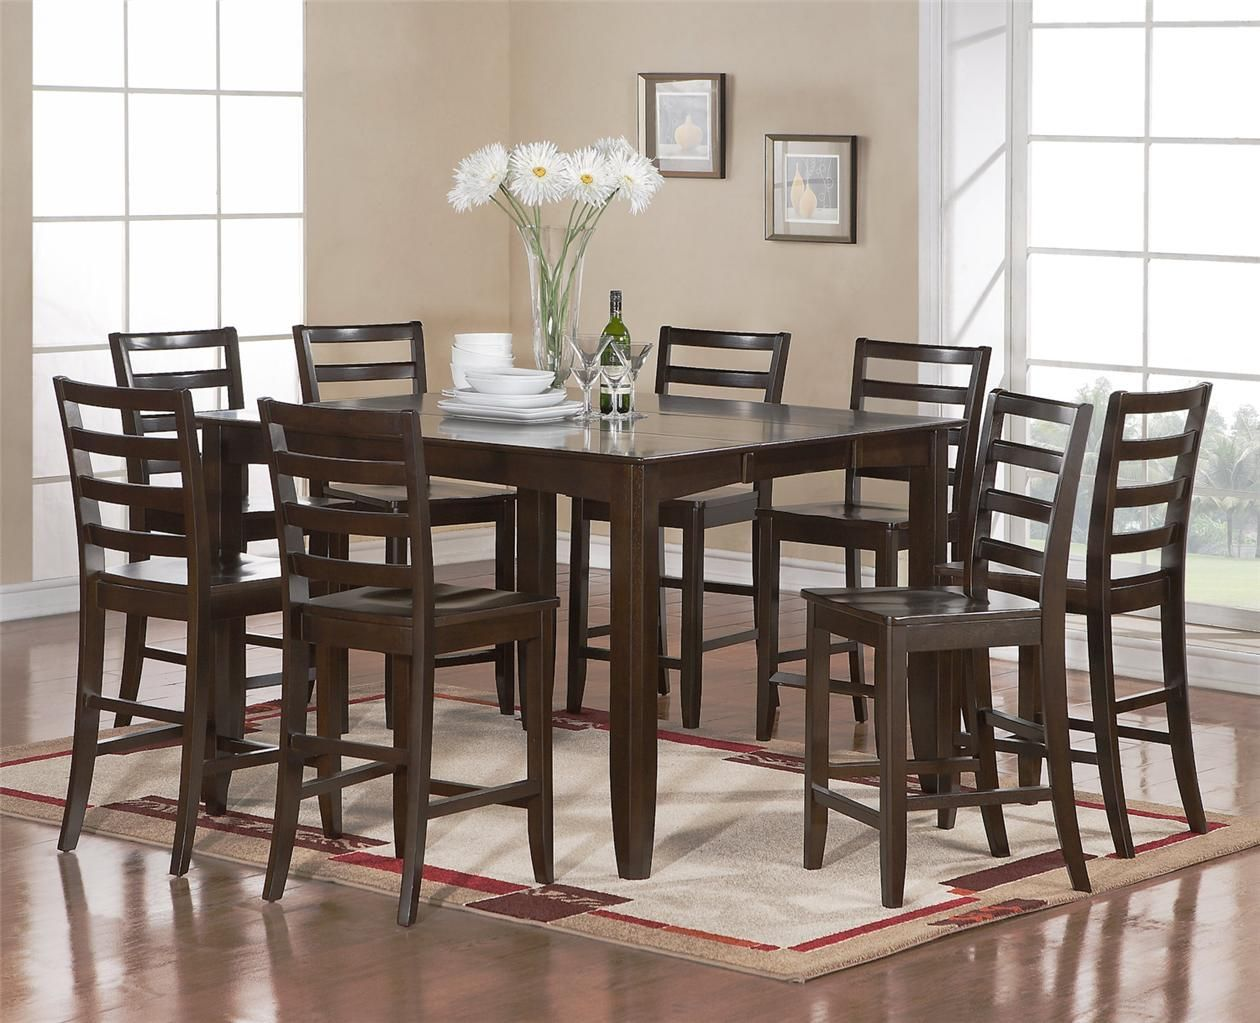 Dining Room Tables That Seat 8